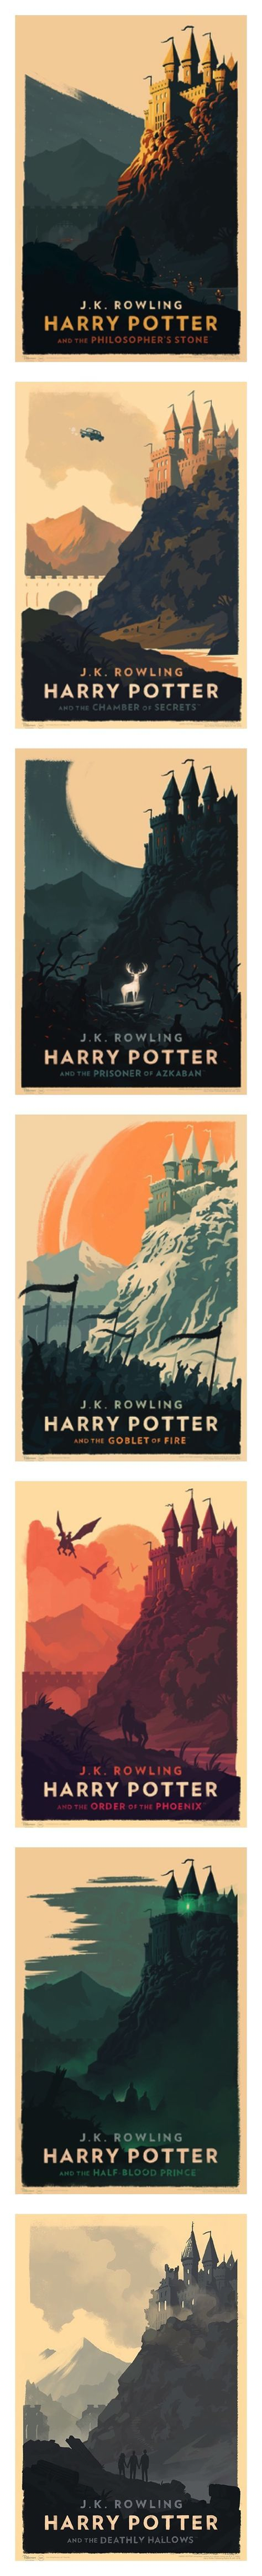 Harry Potter fans will love these simple, magic, vintage-looking art prints by Olly Moss. How do you like the 2015 covers of…